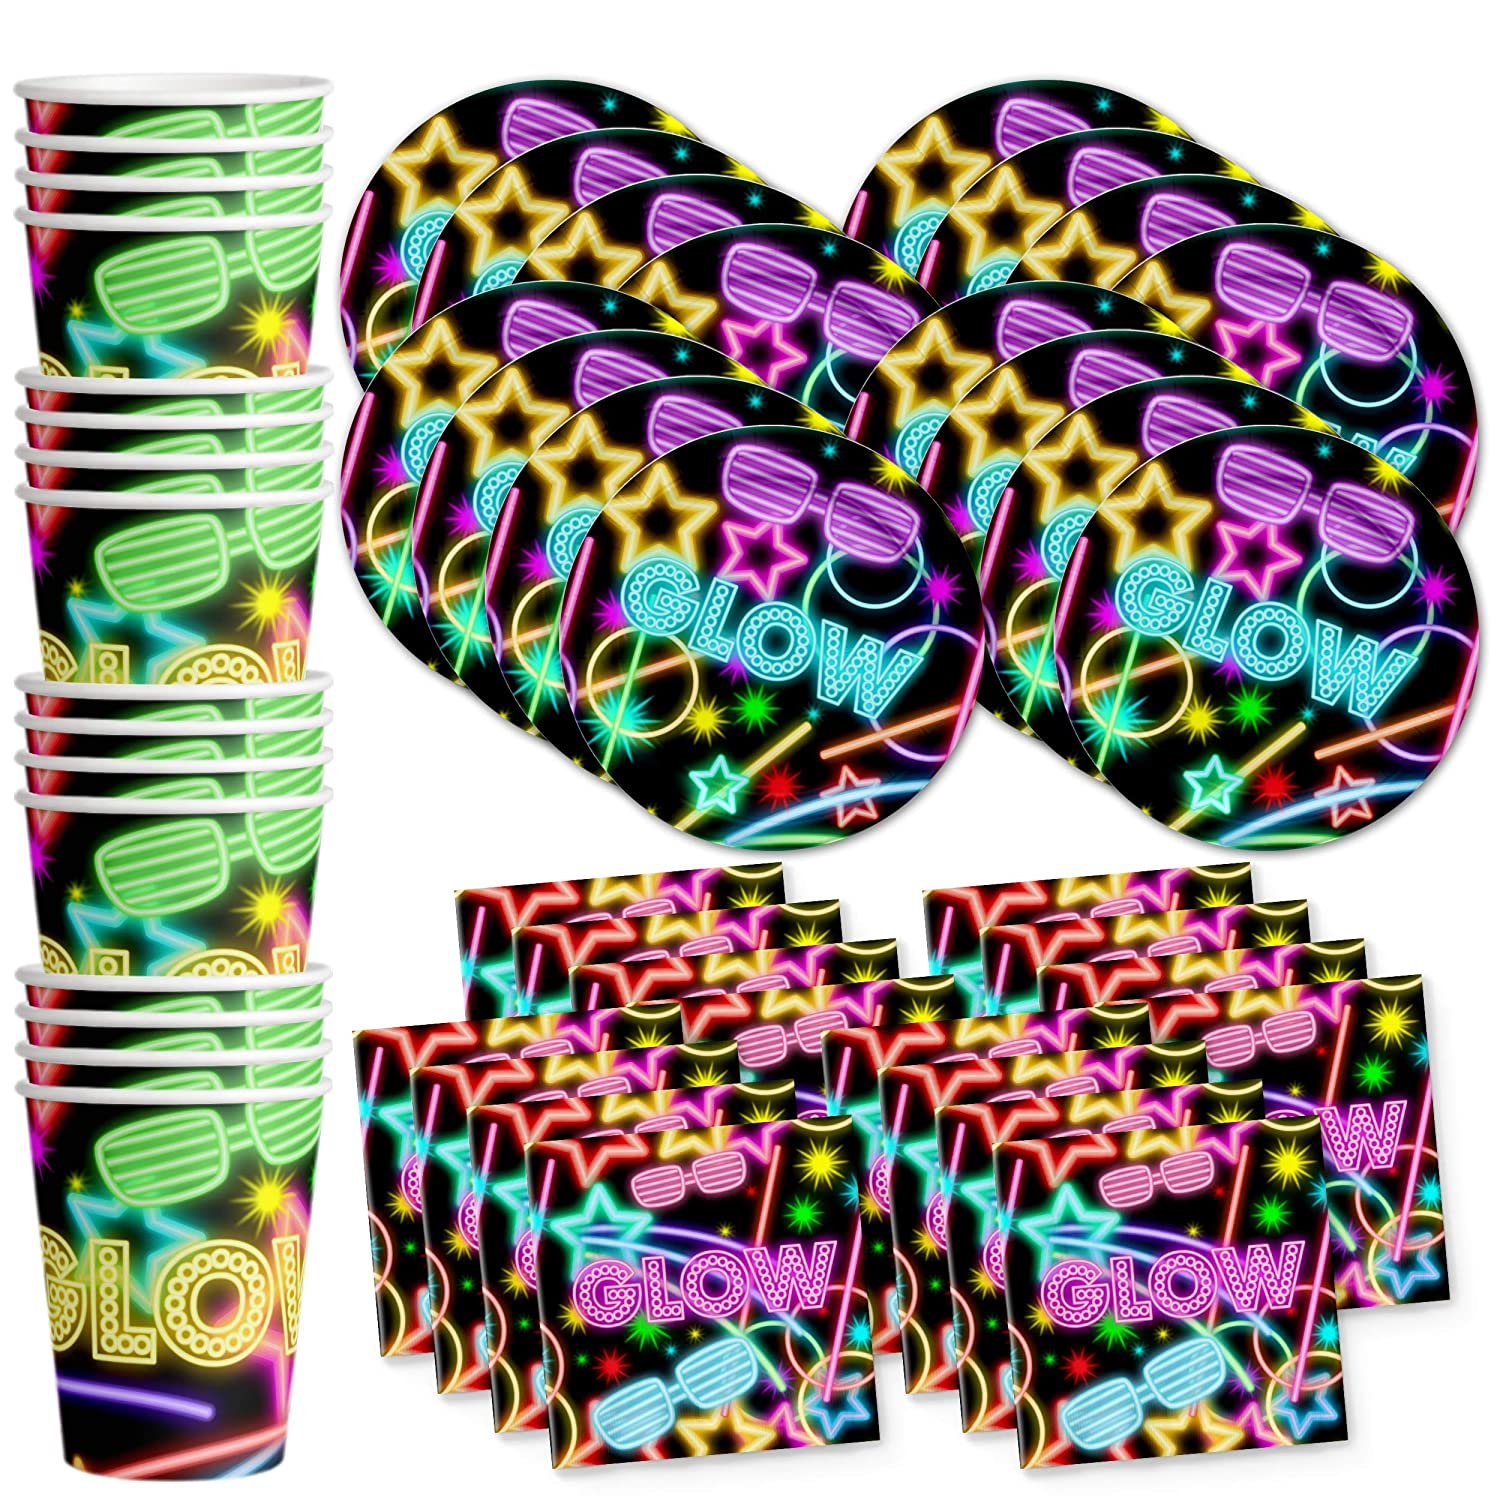 Glow Light Neon Birthday Party Supplies Set Plates Napkins Cups Tableware Kit for 16 Birthday Galore